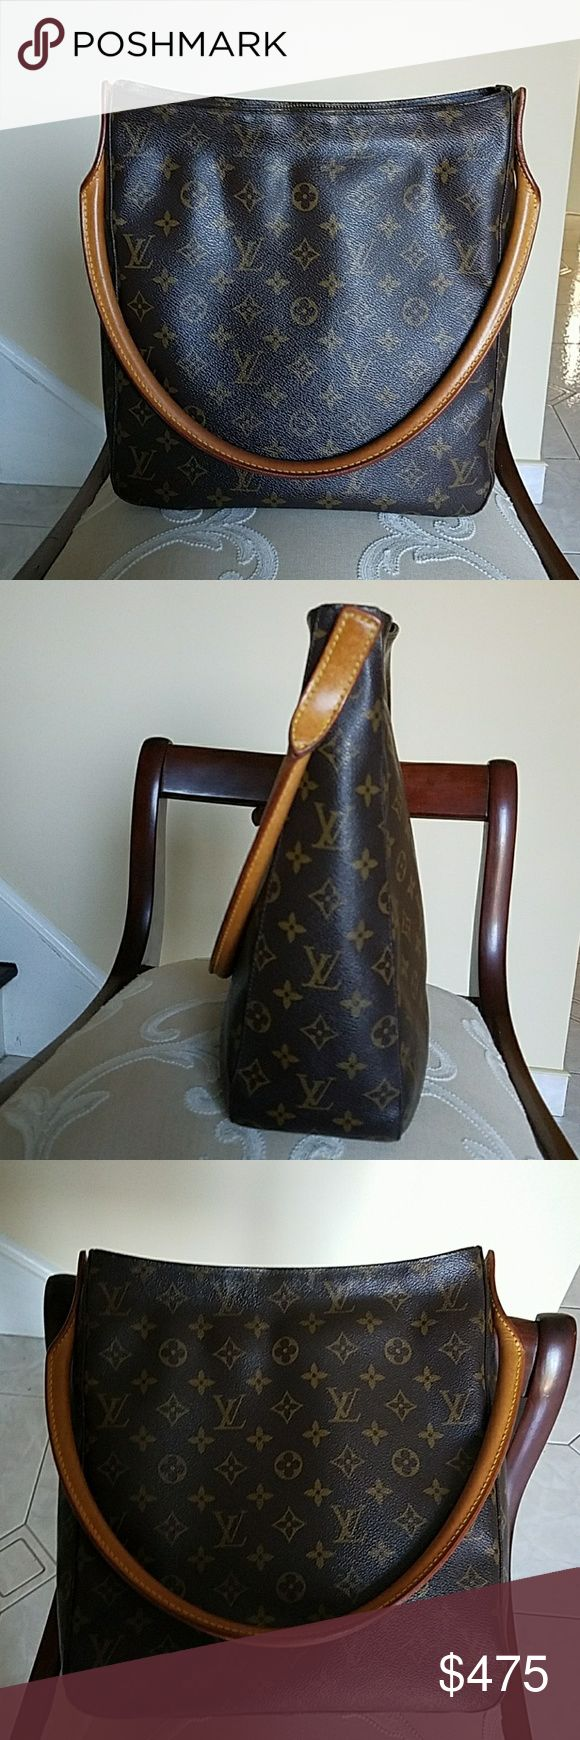 Louis Vuitton GM Looping Shoulder Bag Amazing Authentic monogram Louis Vuitton GM Looping Shoulder Bag. Authentic Louis Vuitton Monogram Looping Shoulder Bag.  GM M51145   Excellent Used Condition. It is the largest-sized member of the Looping family which all have the padded natural leather swiveling arc handle. Dustbag included. Louis Vuitton Bags Shoulder Bags